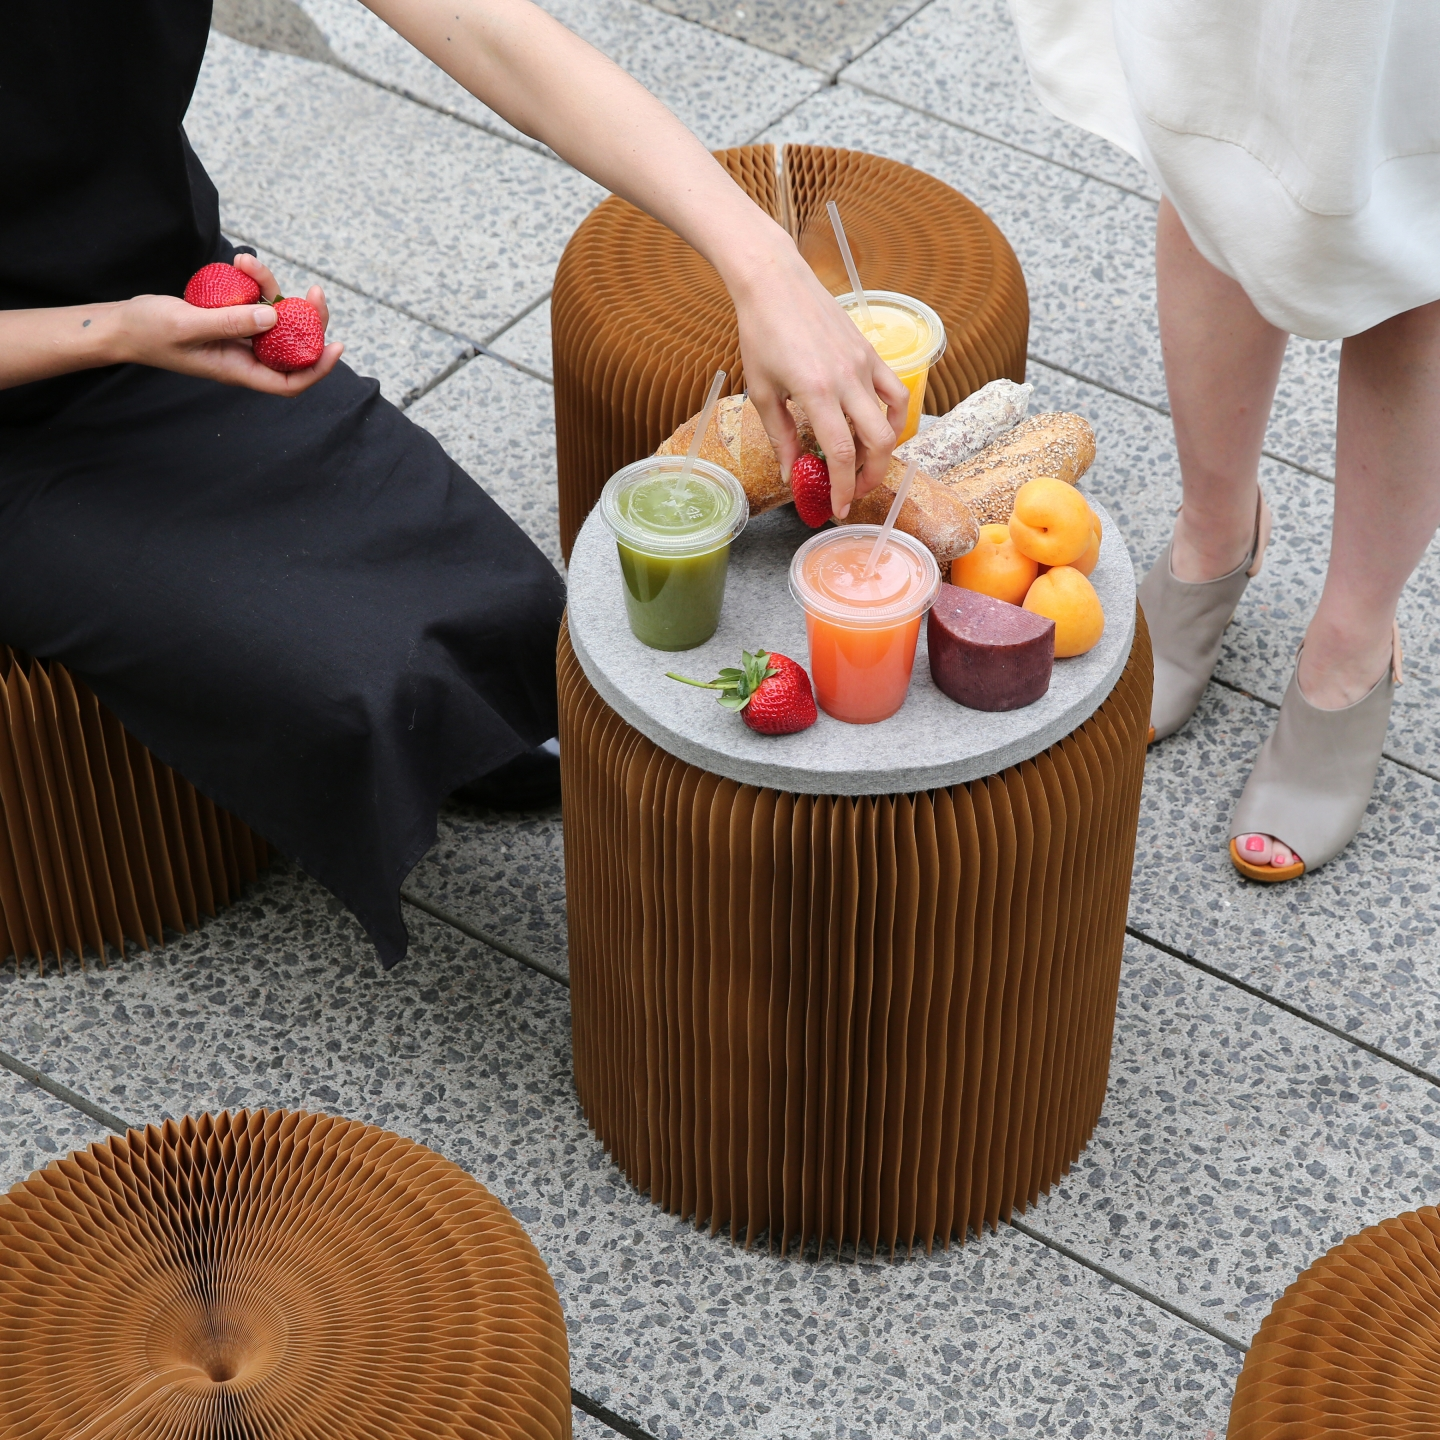 paper seating by molo in NYC USA - a picnic on the Chelsea High Line makes use of softseating with felt pads as spontaneous tables